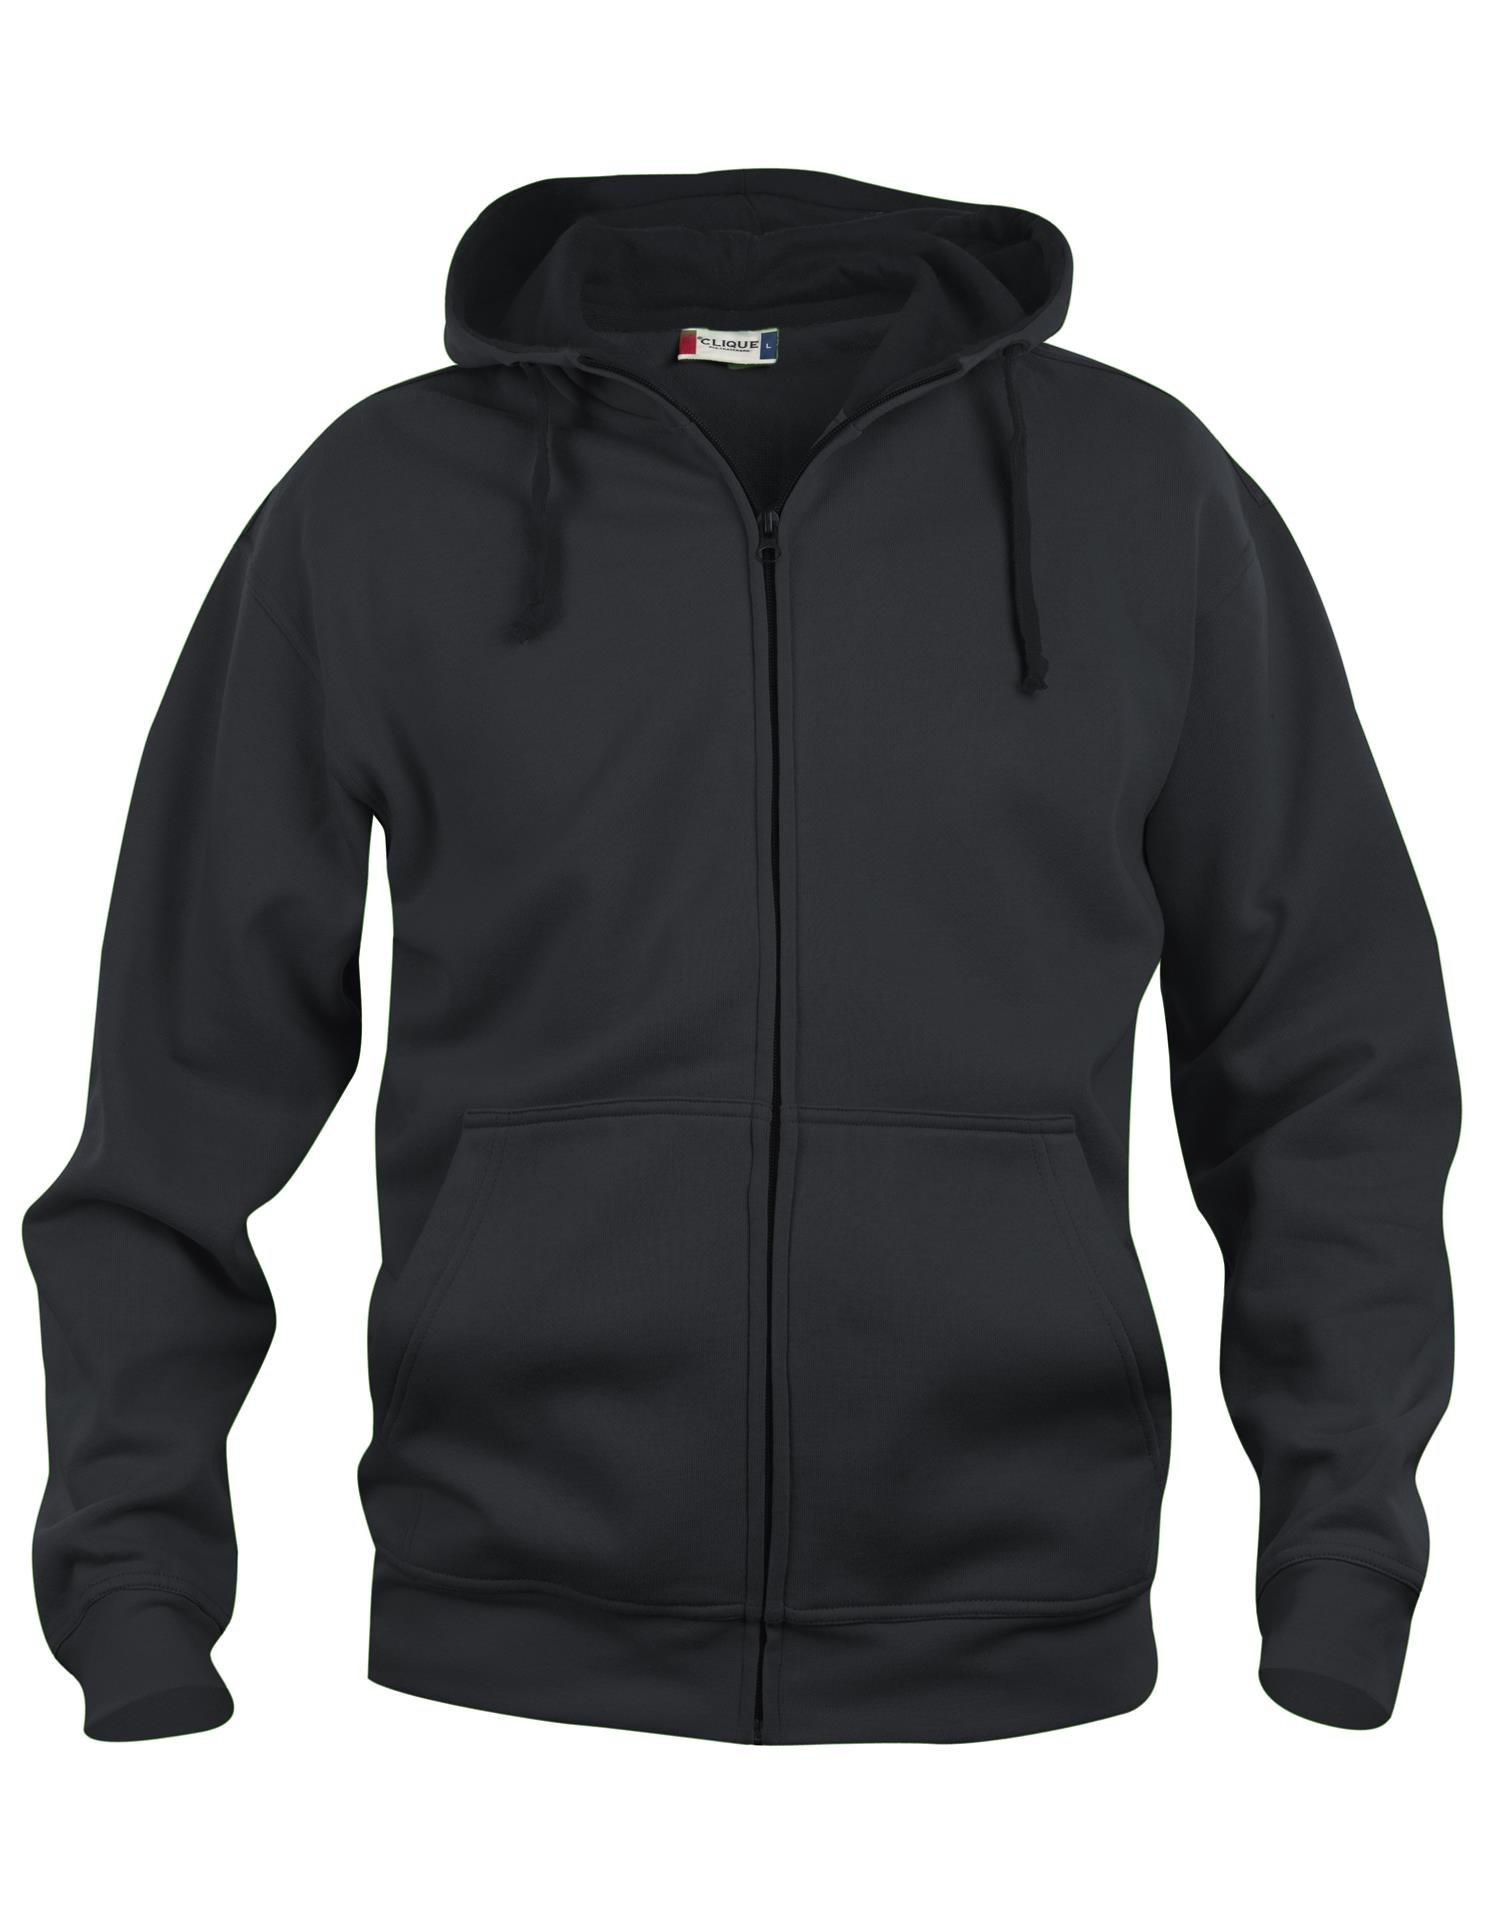 NewWave Basic Hoody Full Zip (S - NERO)